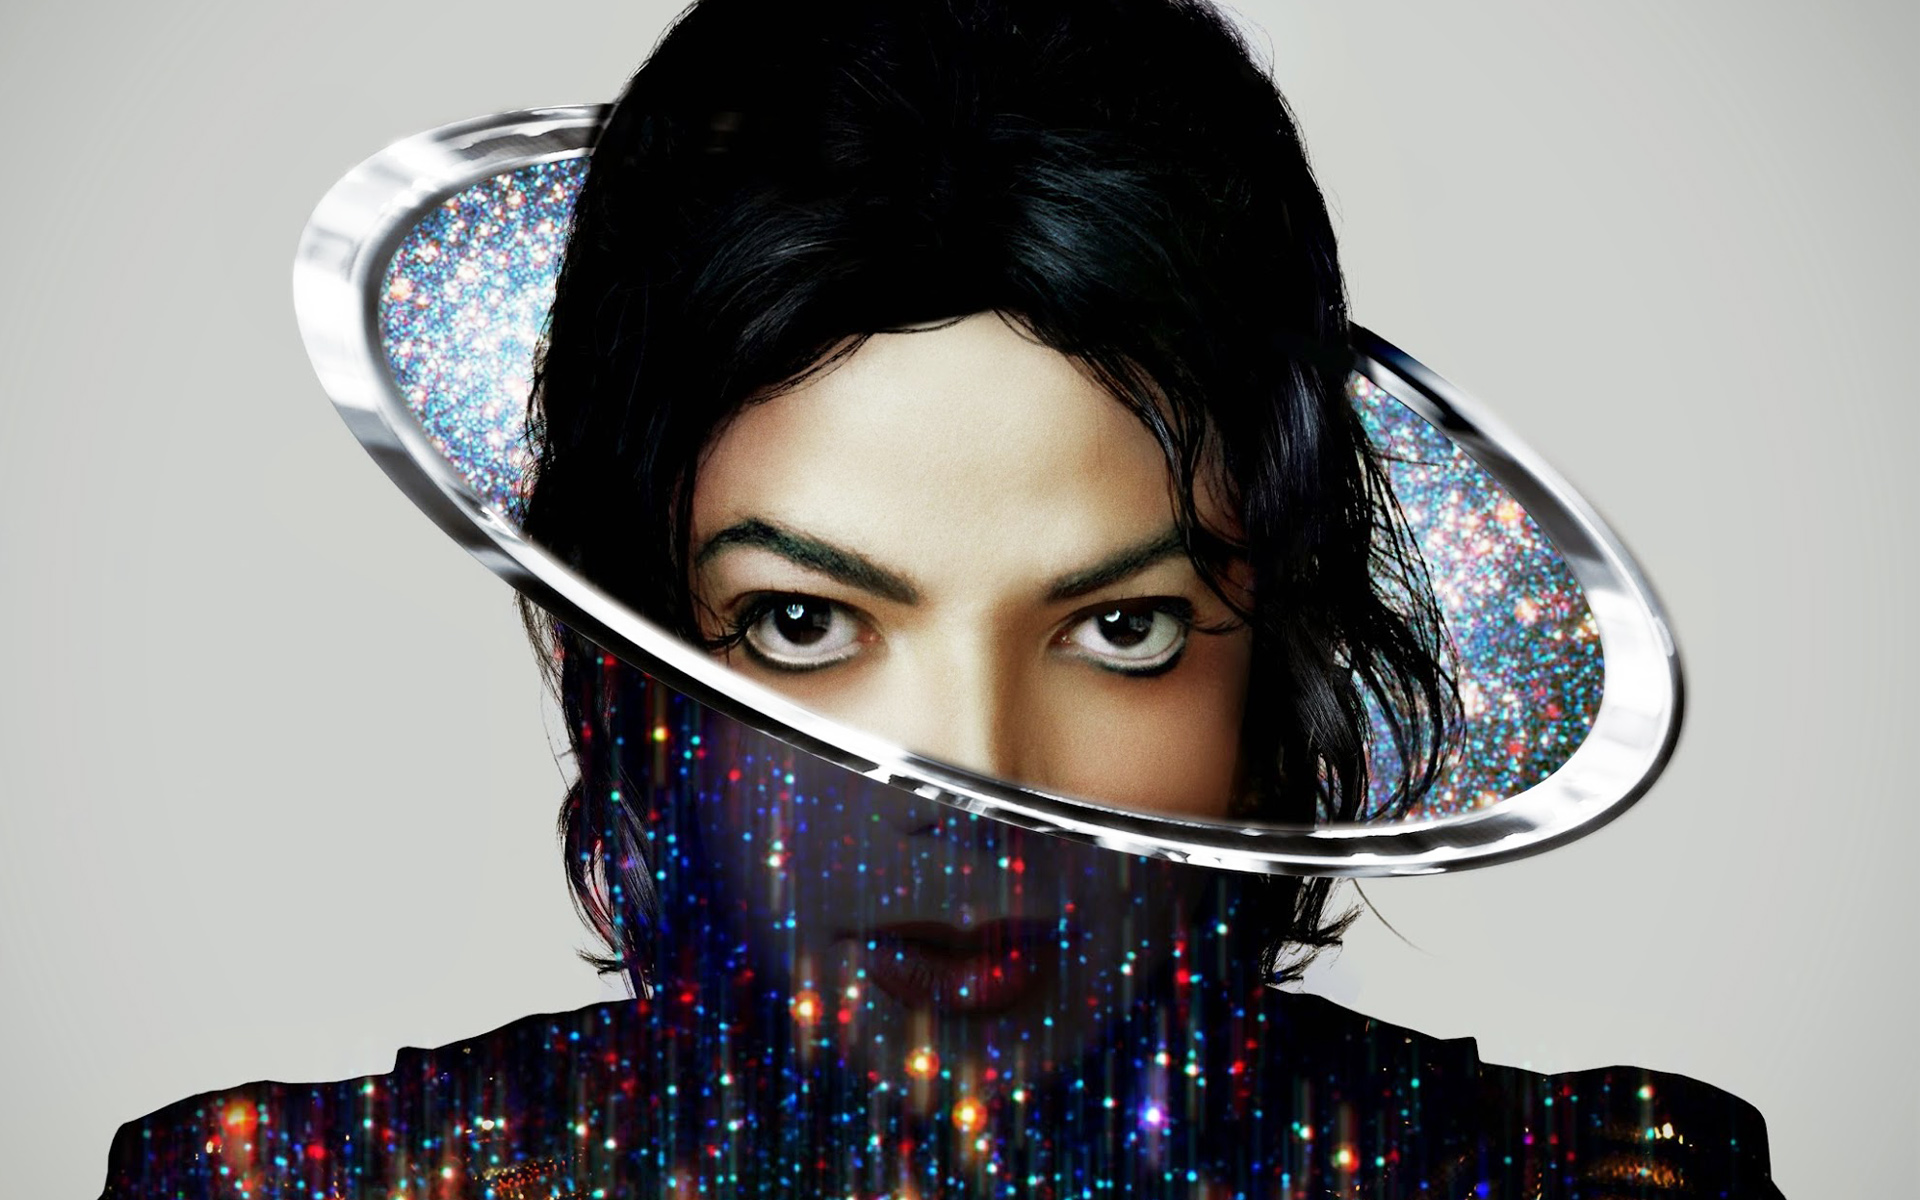 Michael Jackson Xscape 53.35 Kb